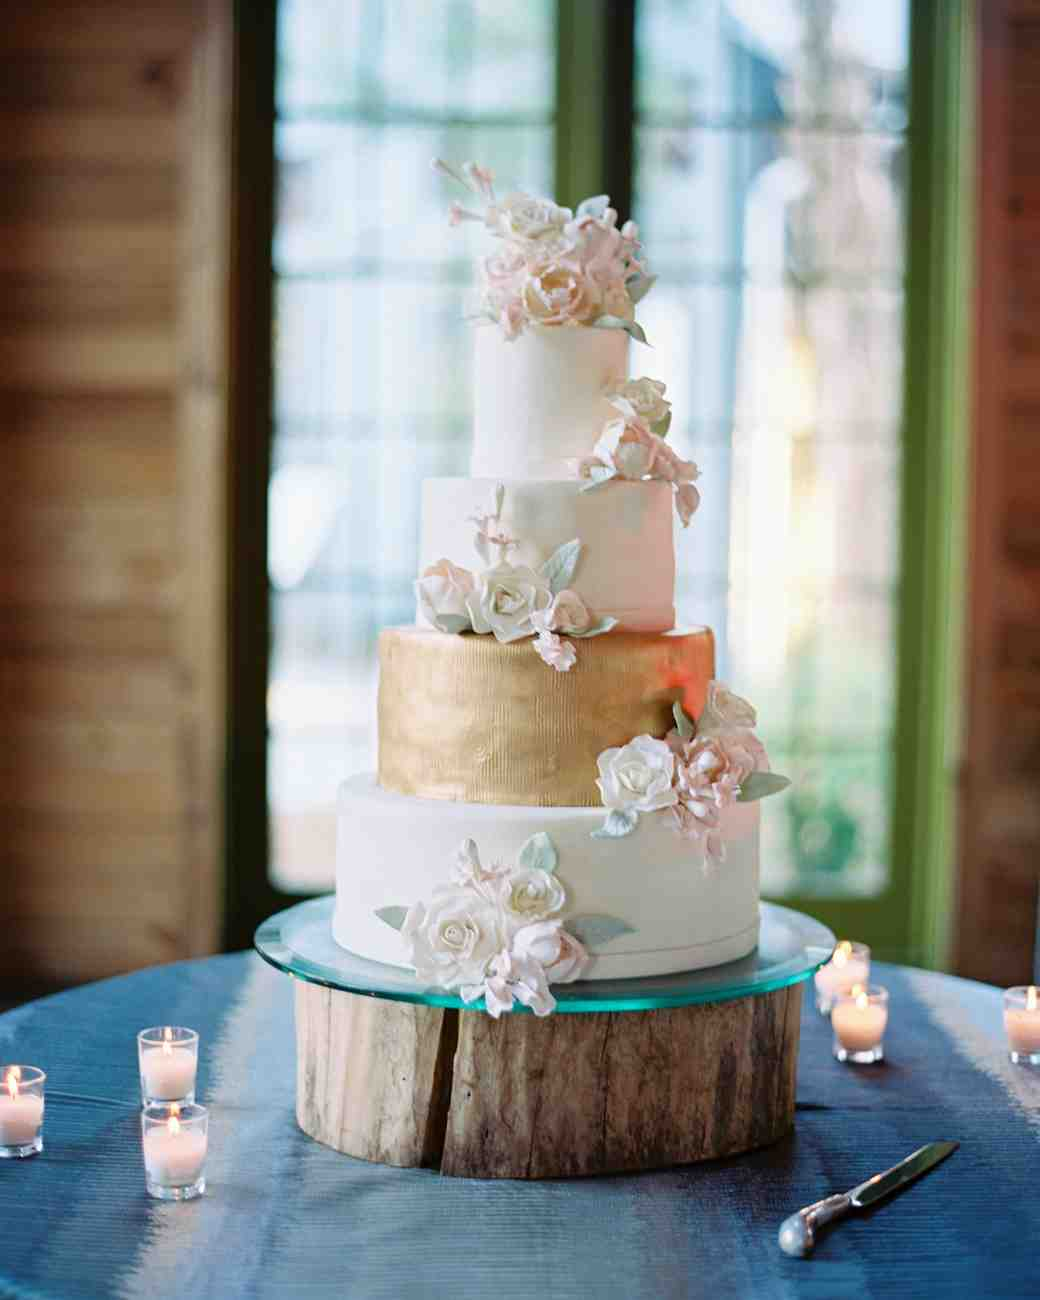 45 Wedding Cakes With Sugar Flowers That Look Stunningly: Wedding Cakes With Sugar Flowers That Look Incredibly Real